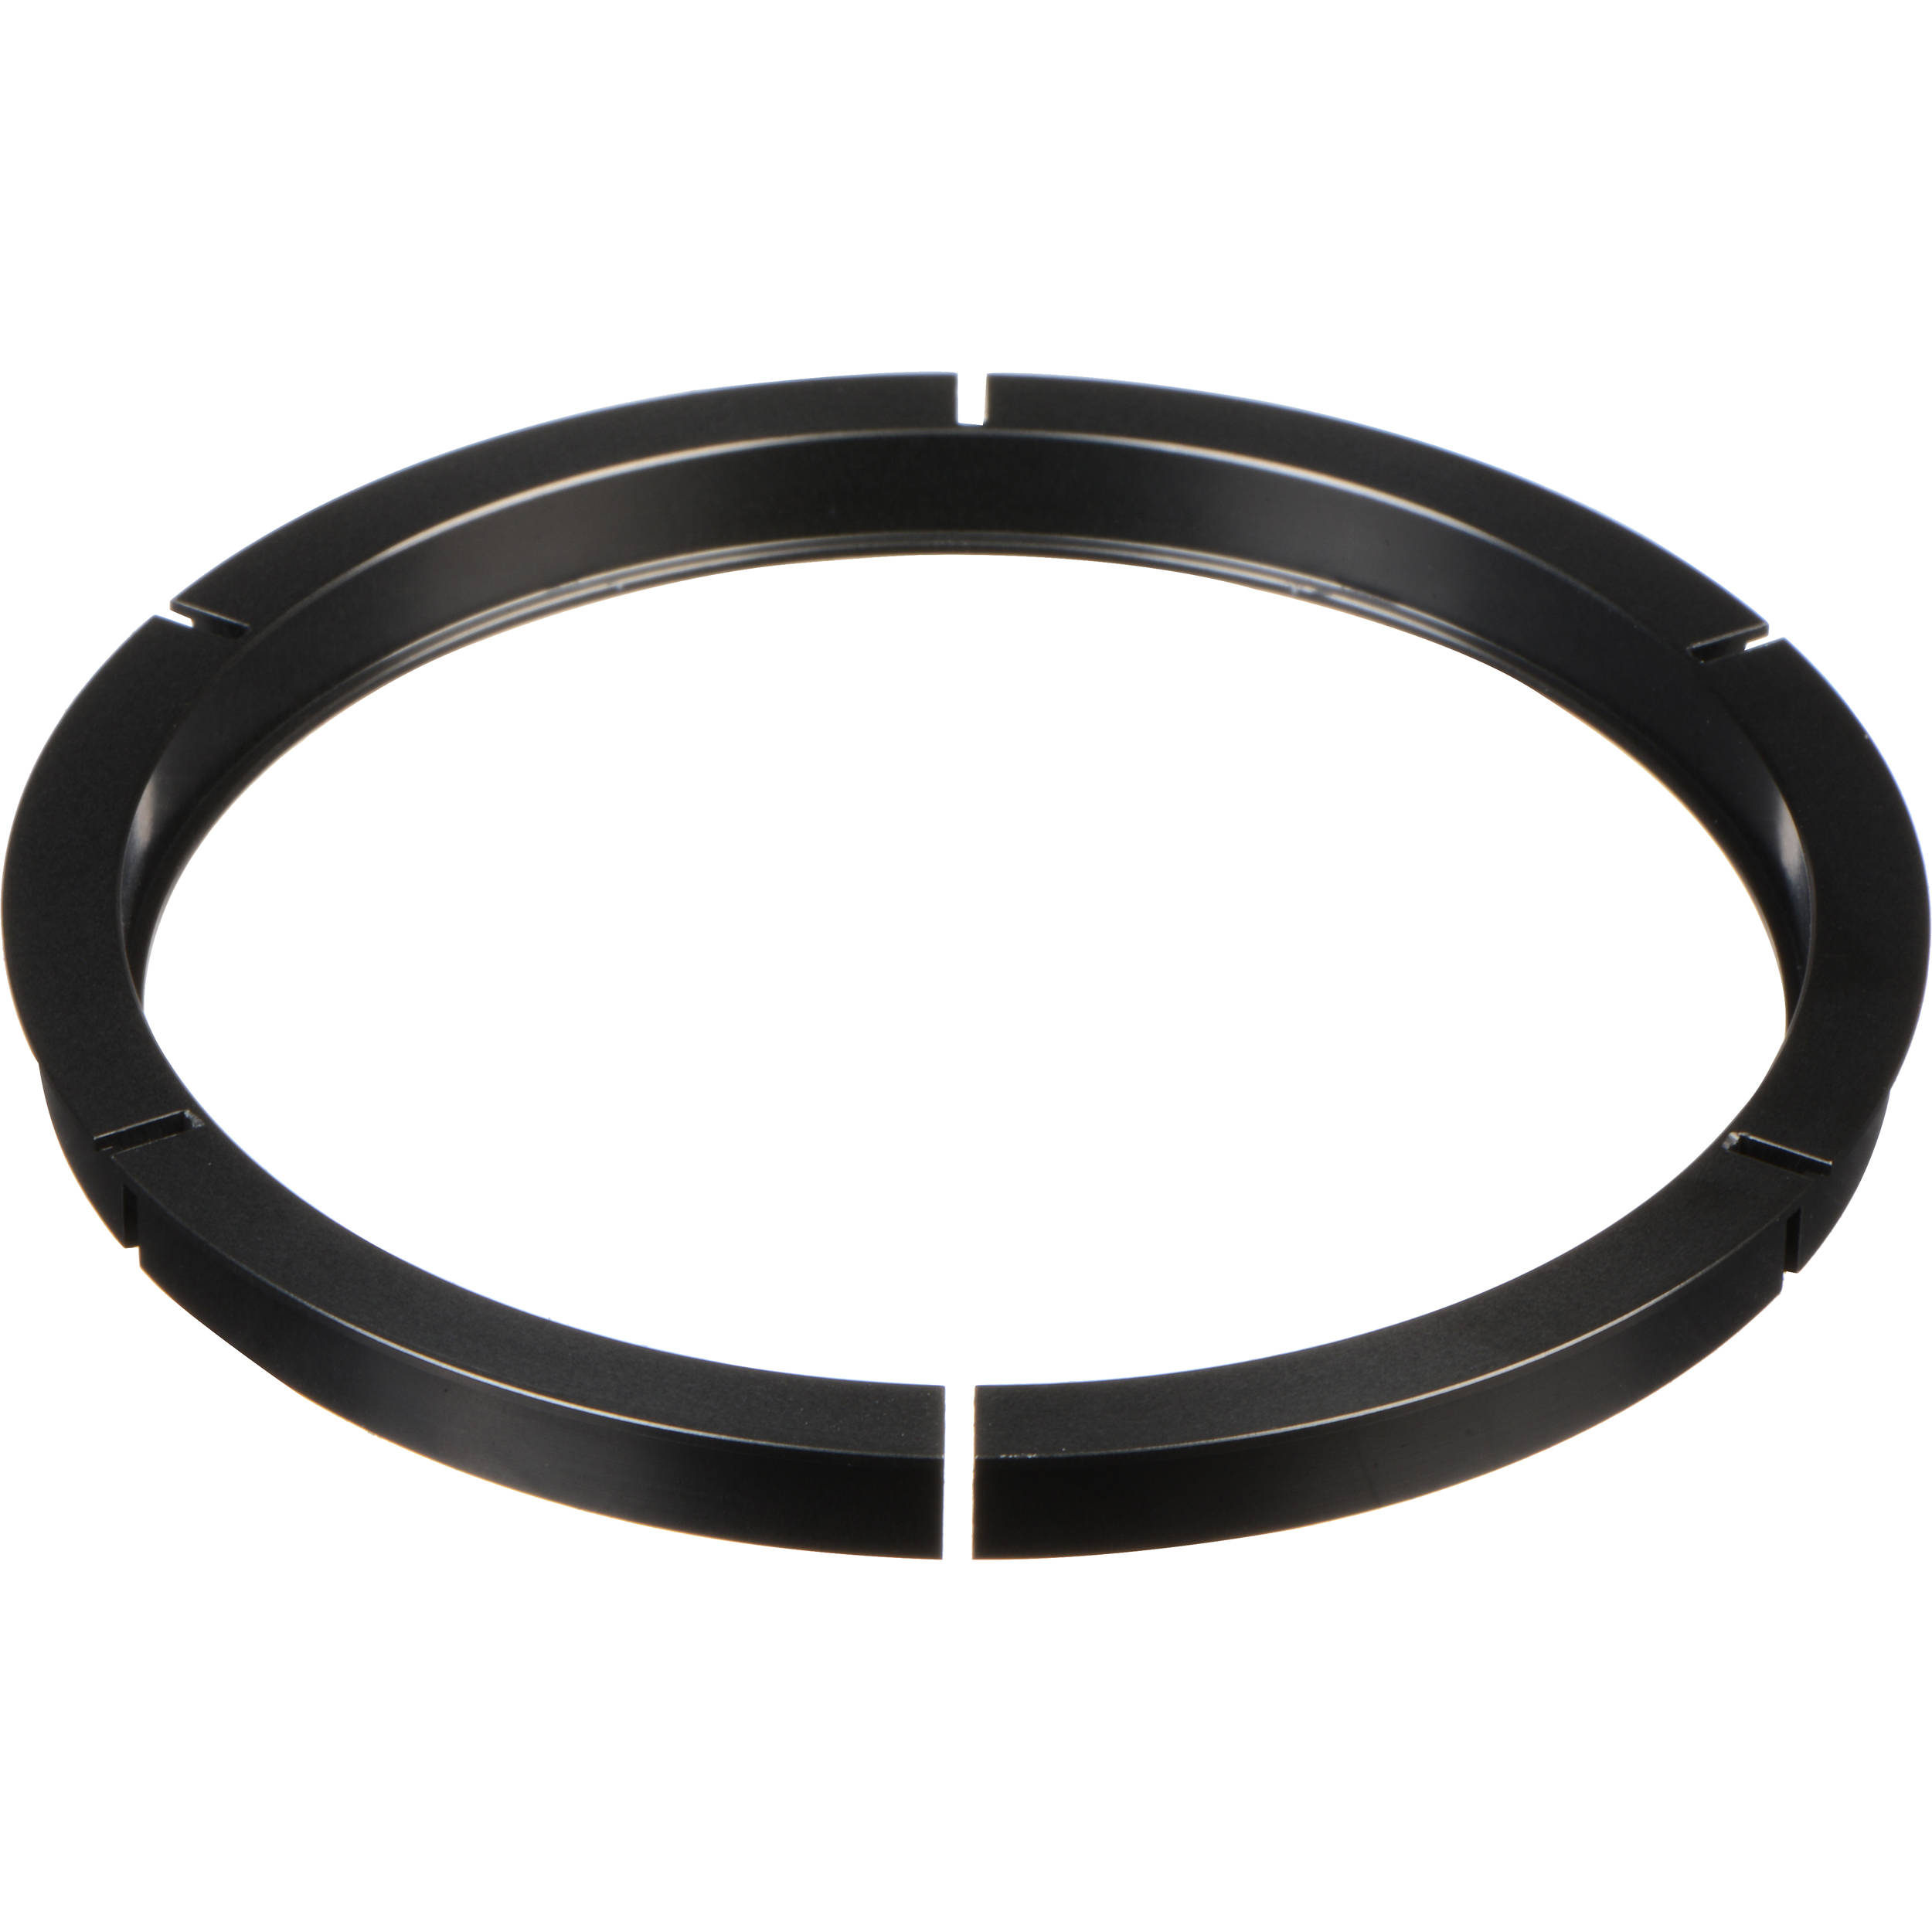 Le Meilleur Lee Filters 100 90Mm Converter Ring For Fk100 Filter Fkd100 90 Ce Mois Ci